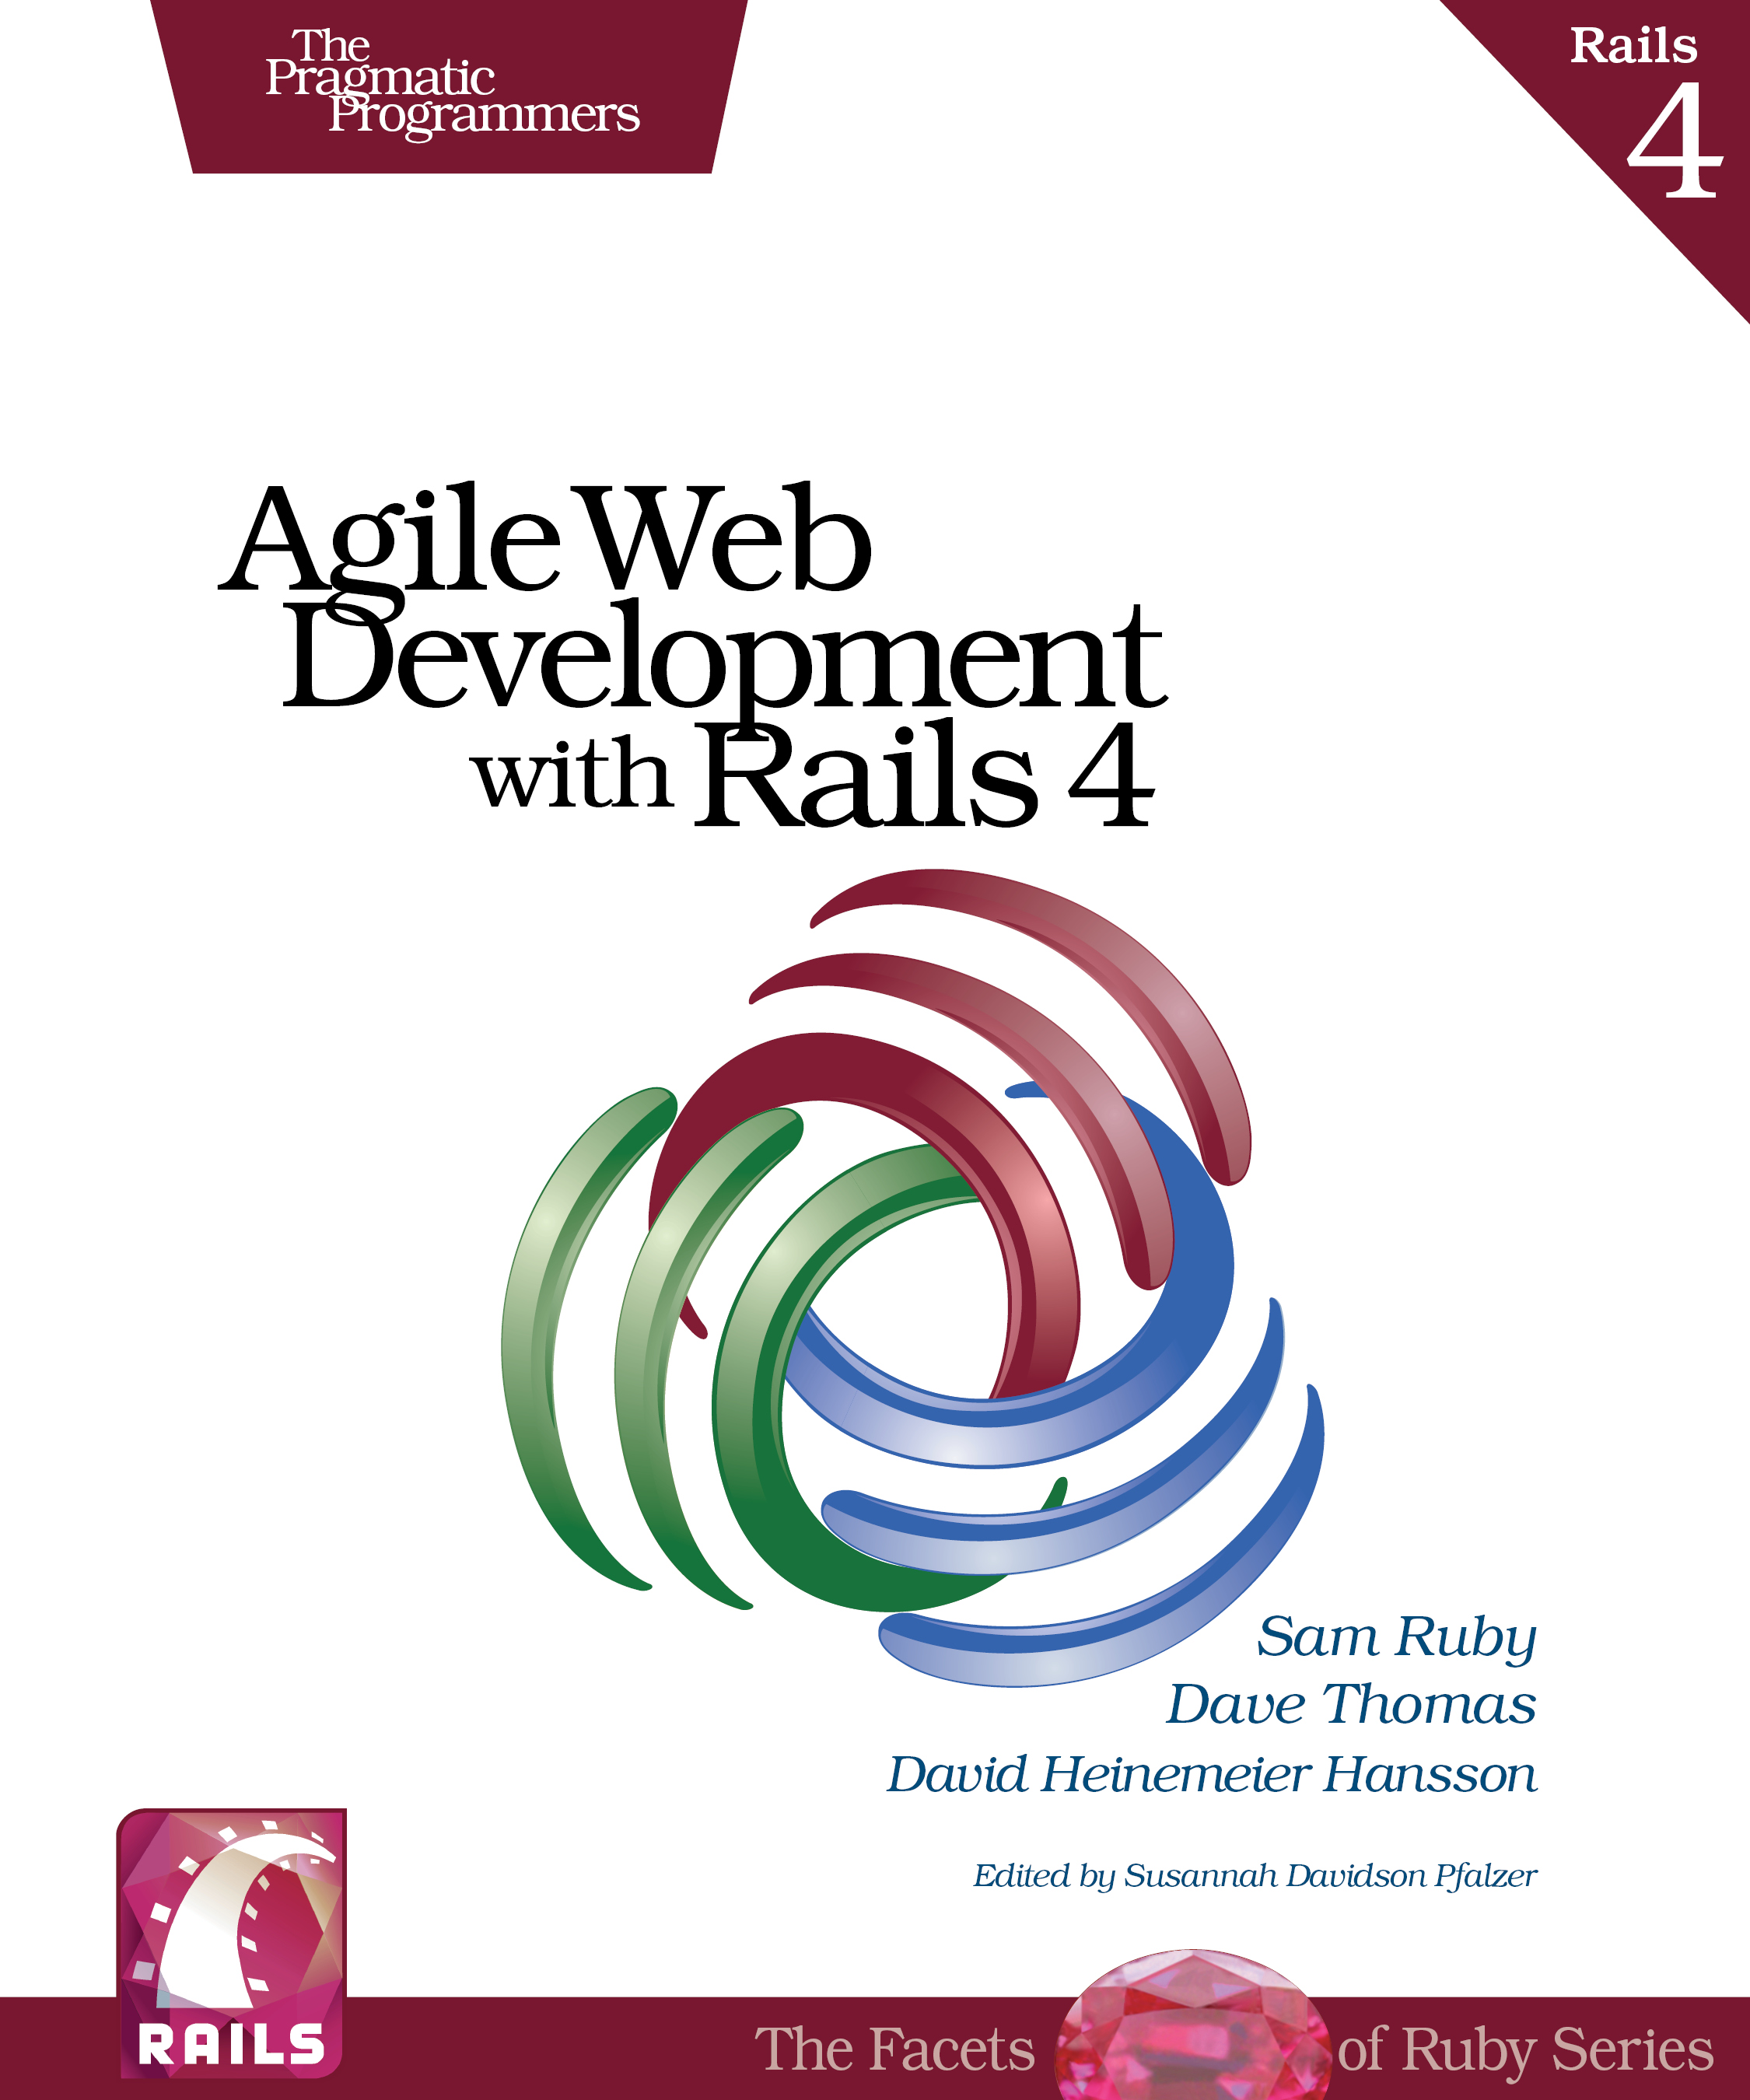 6 Books for learning or advancing your rails knowledge